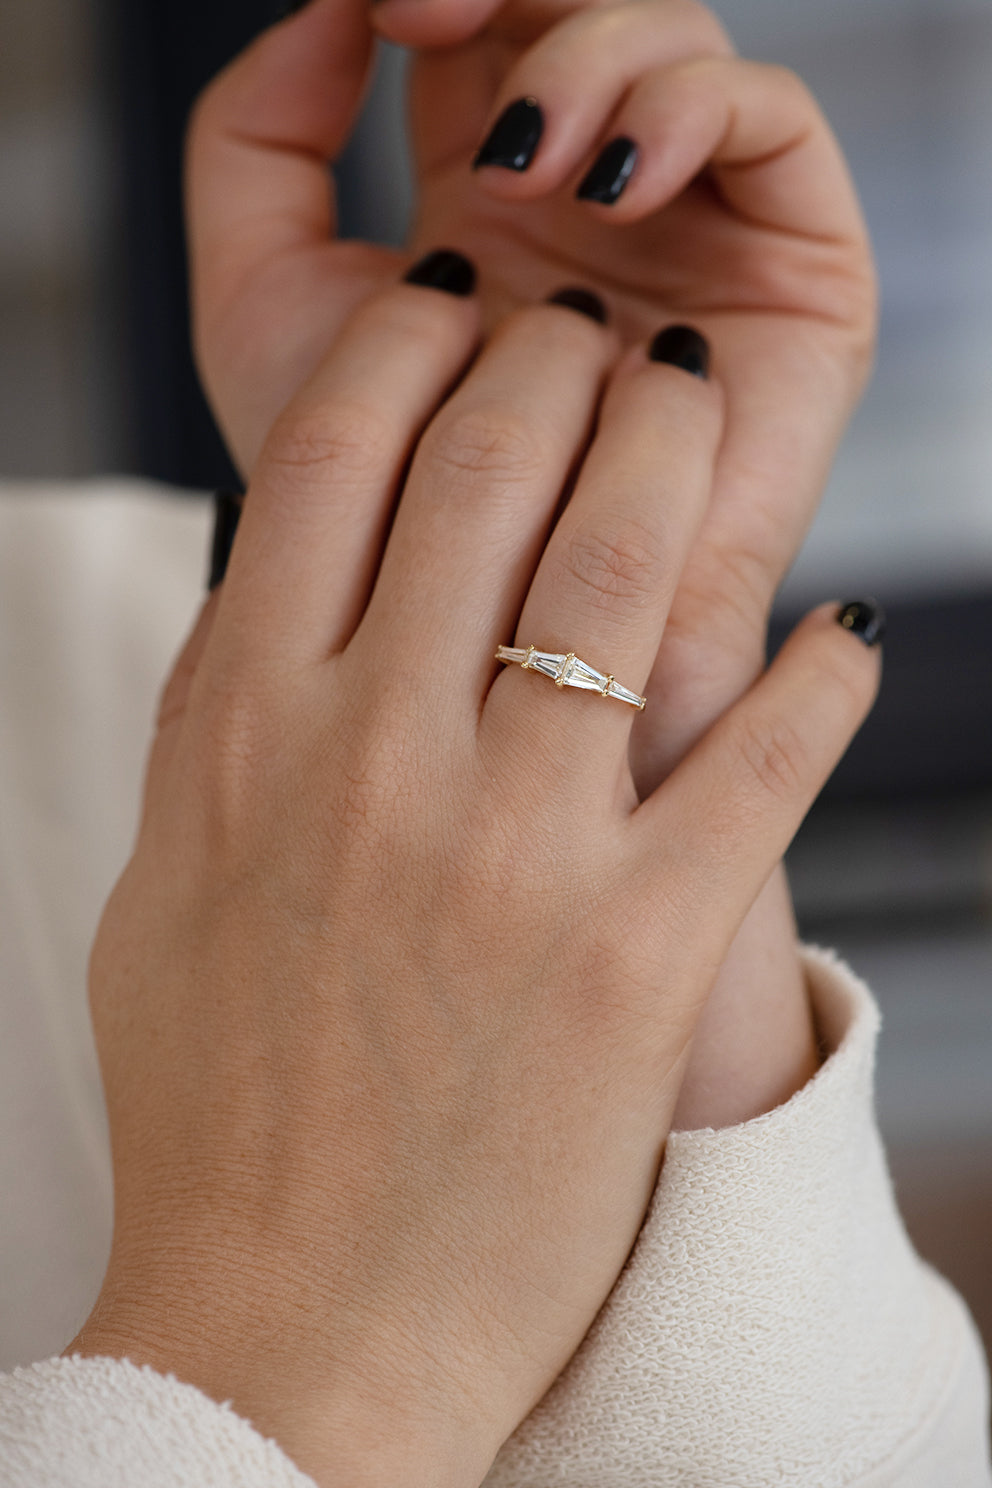 Tapered Baguette Engagement Ring on Hands